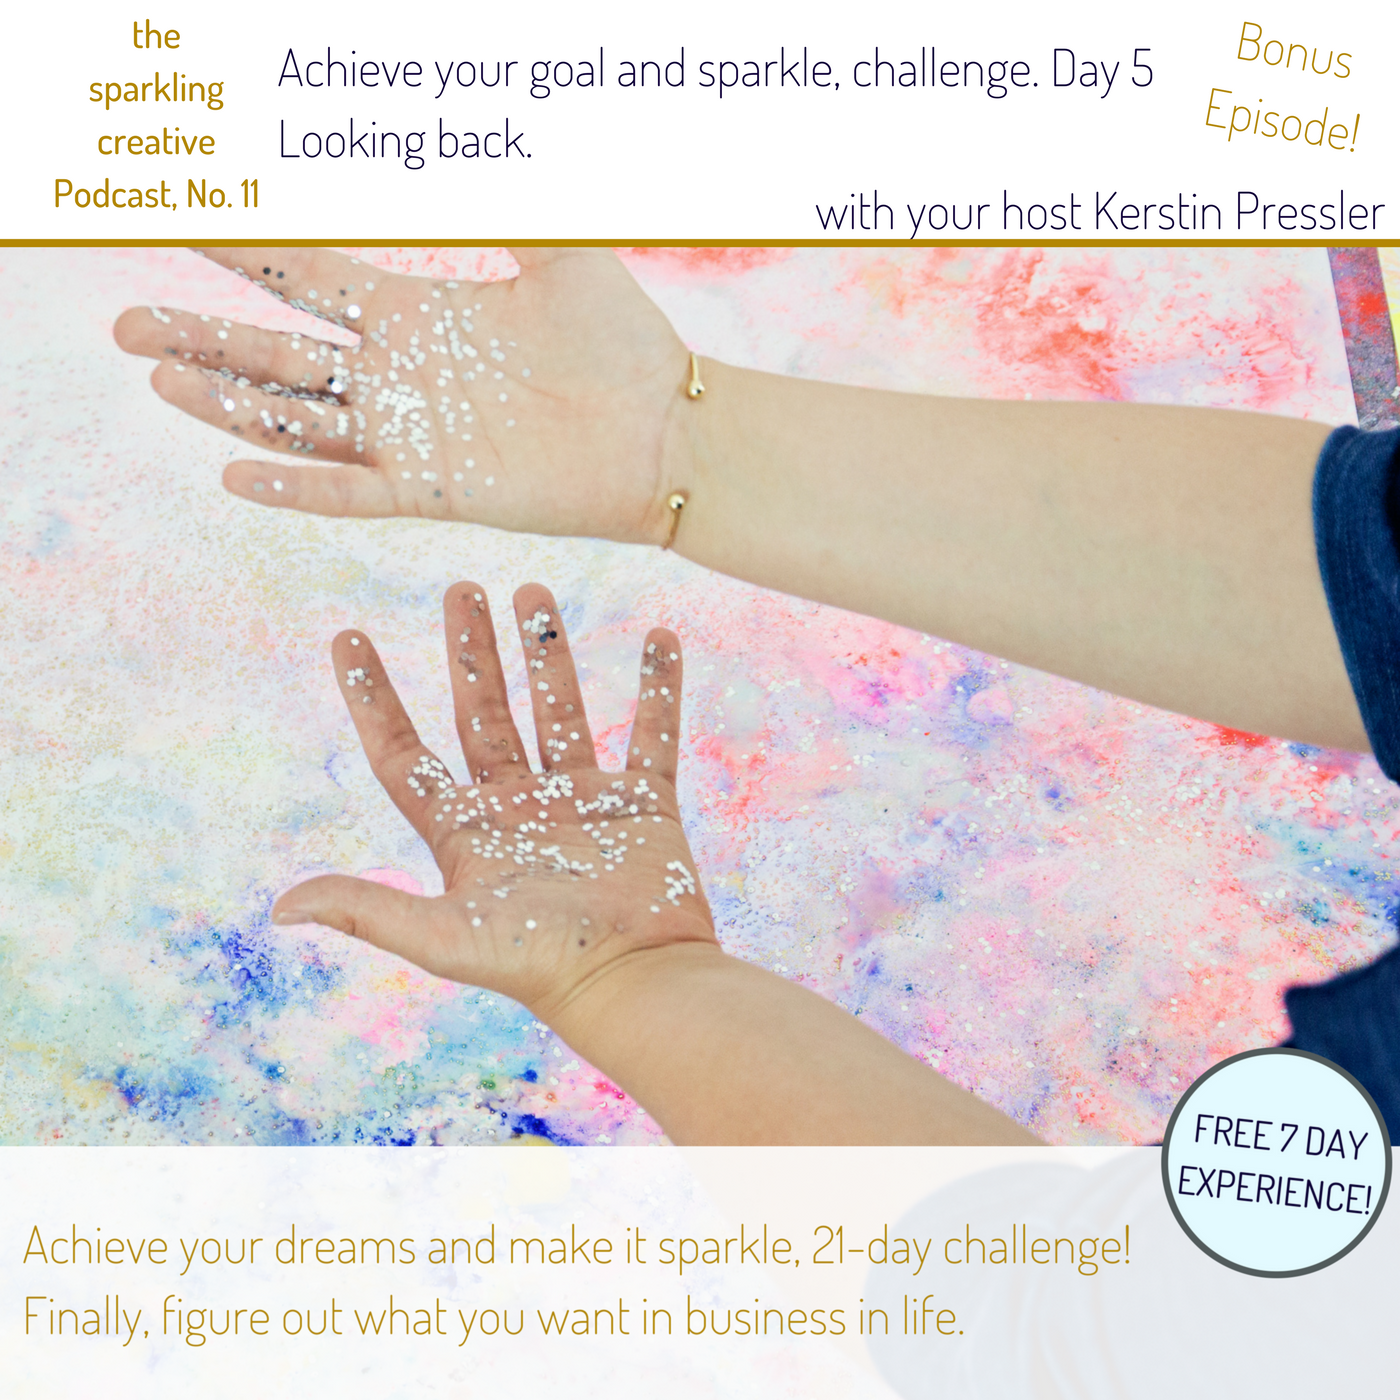 the sparkling creative Podcast, Episode 11, looking back. Challenge Day 5